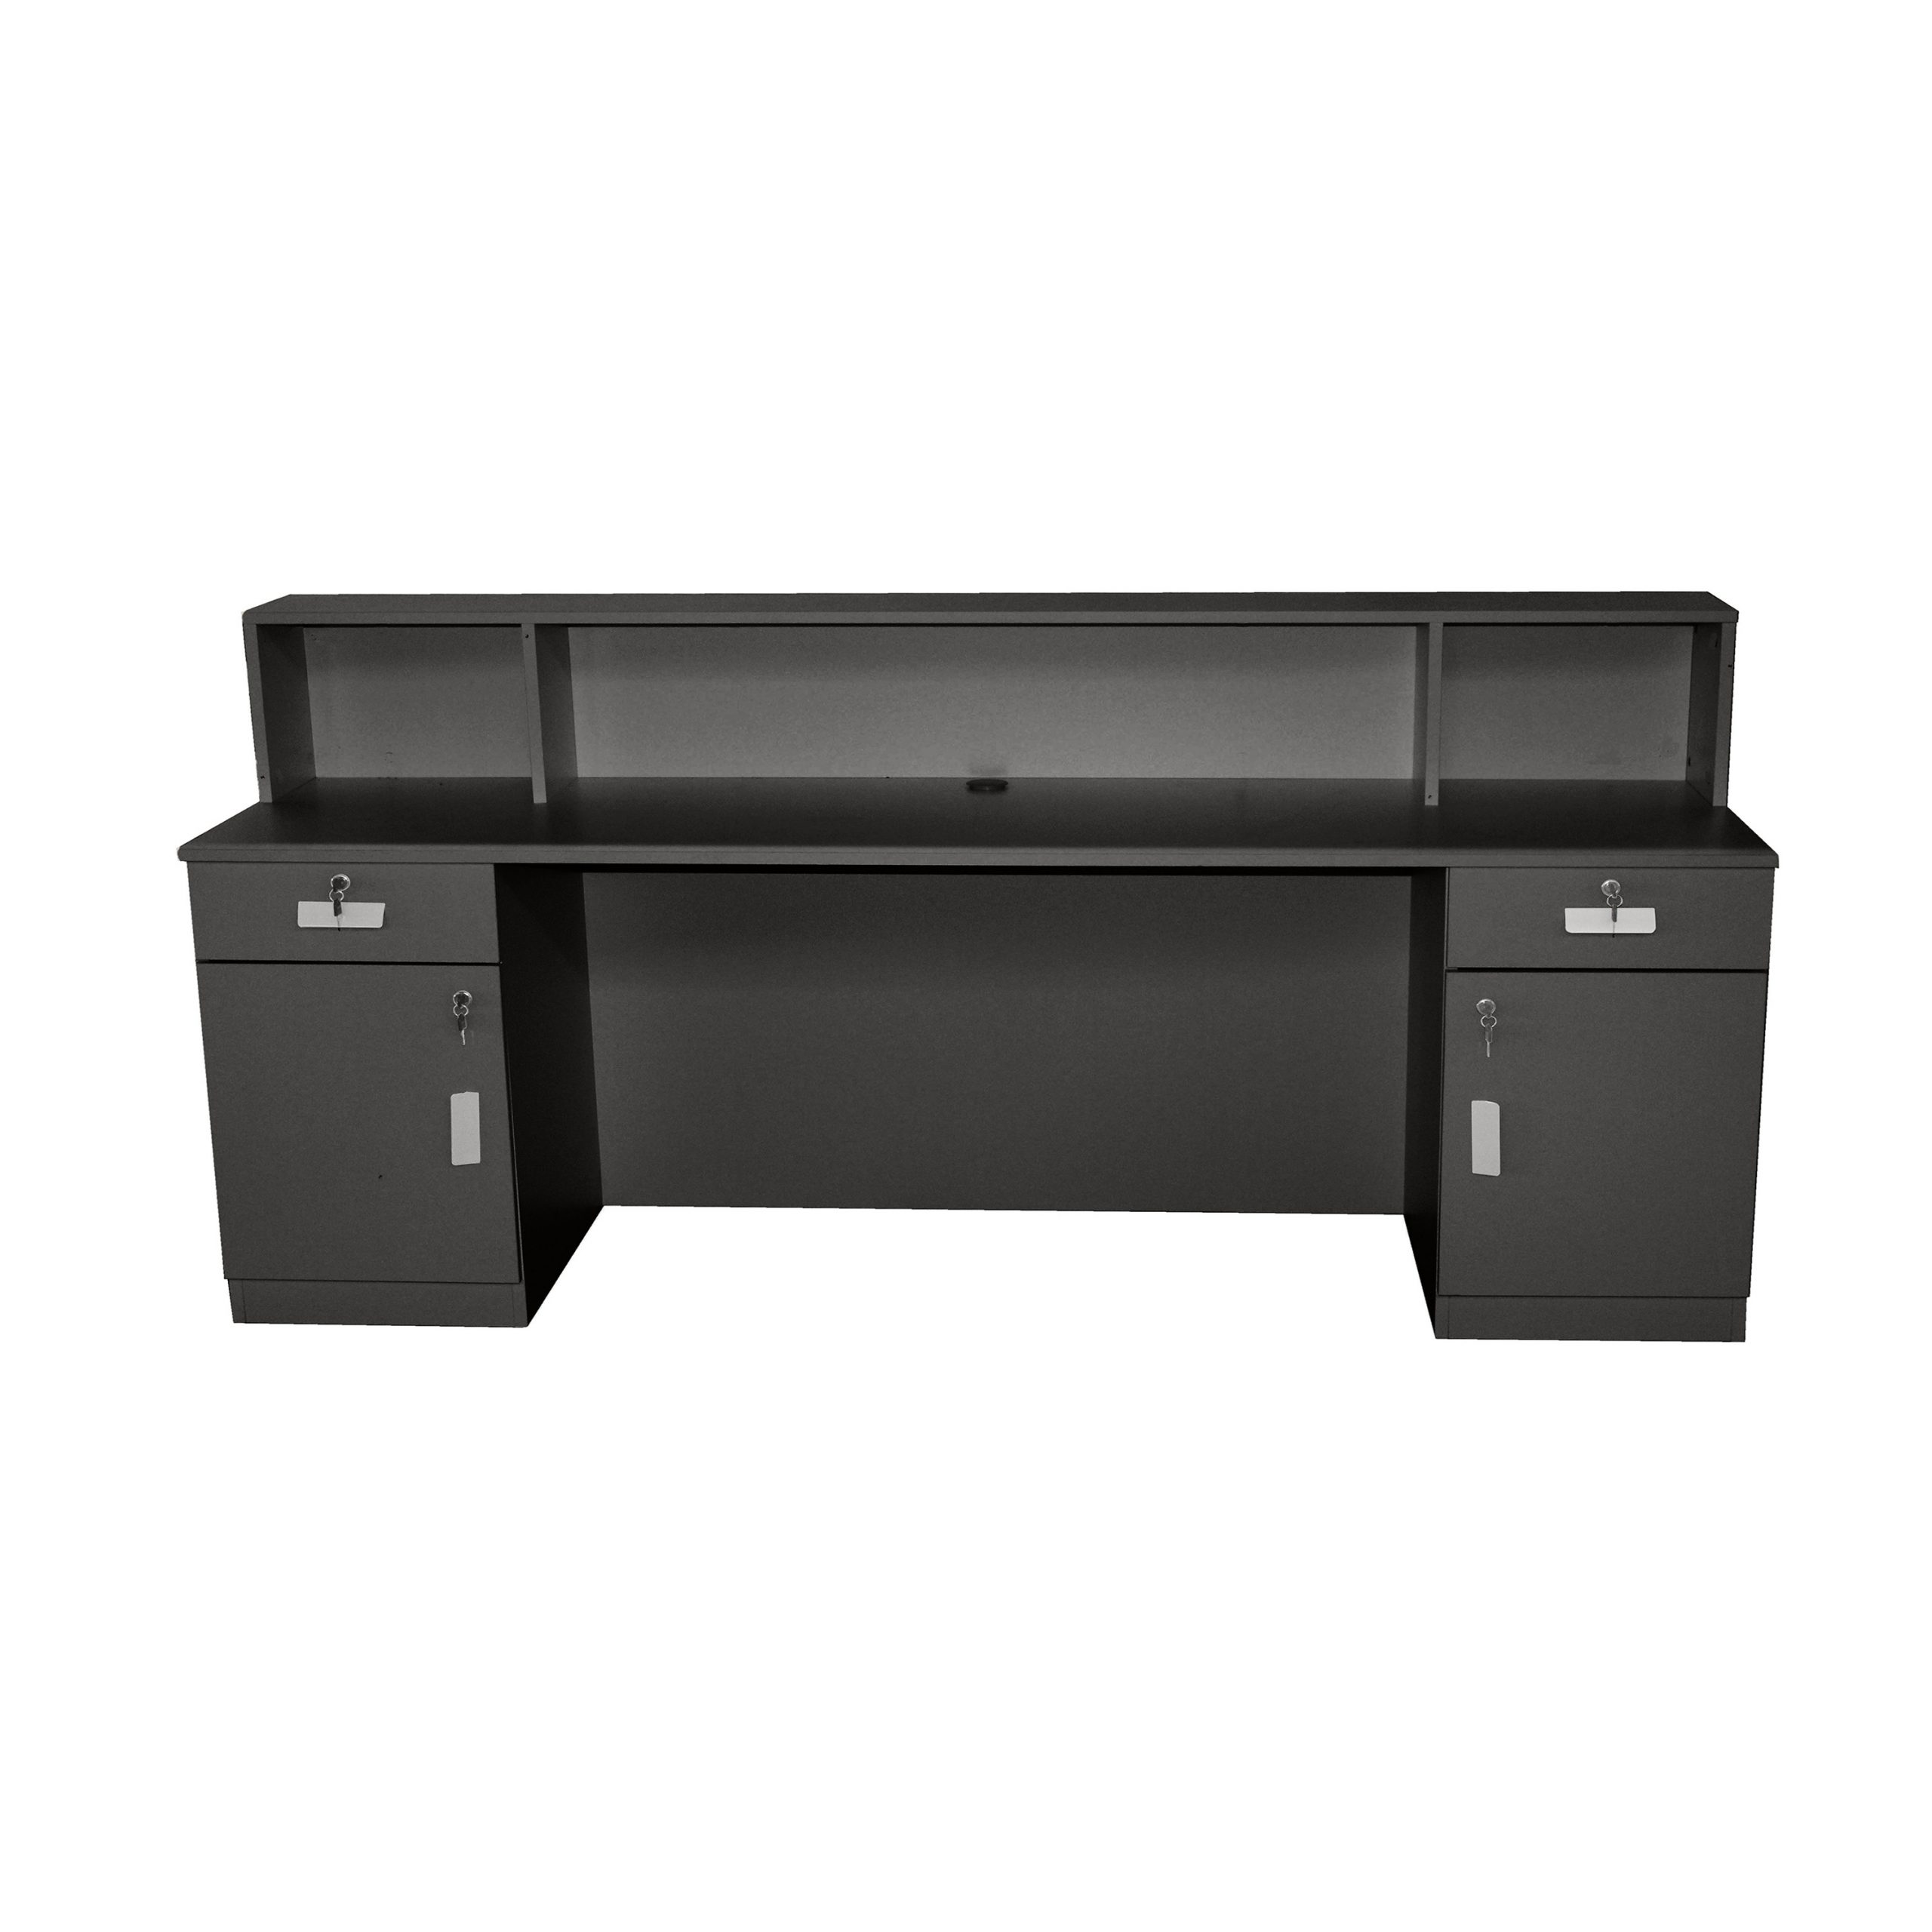 Brand New Charcoal Reception Desk Counter 2M